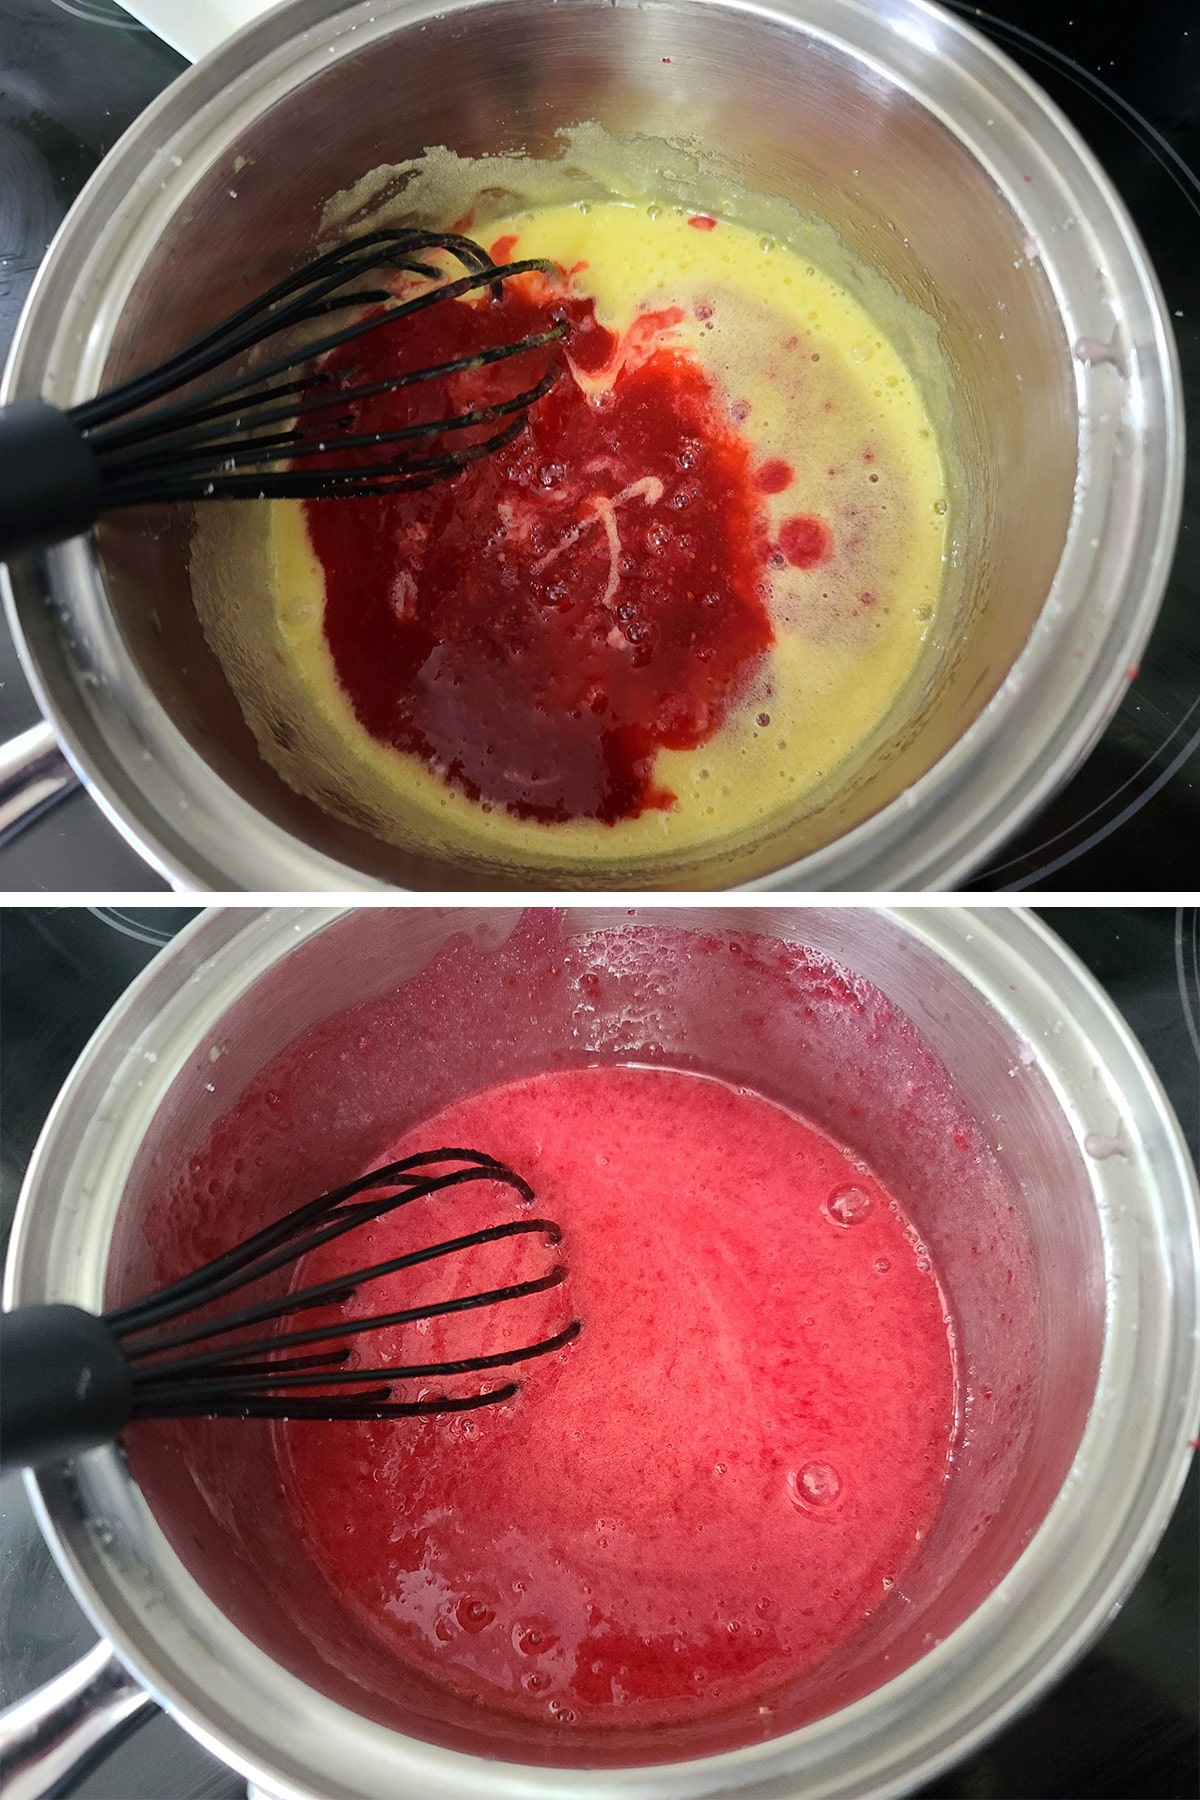 Cranberry pulp being added to the eggs and sugar and whisked in.